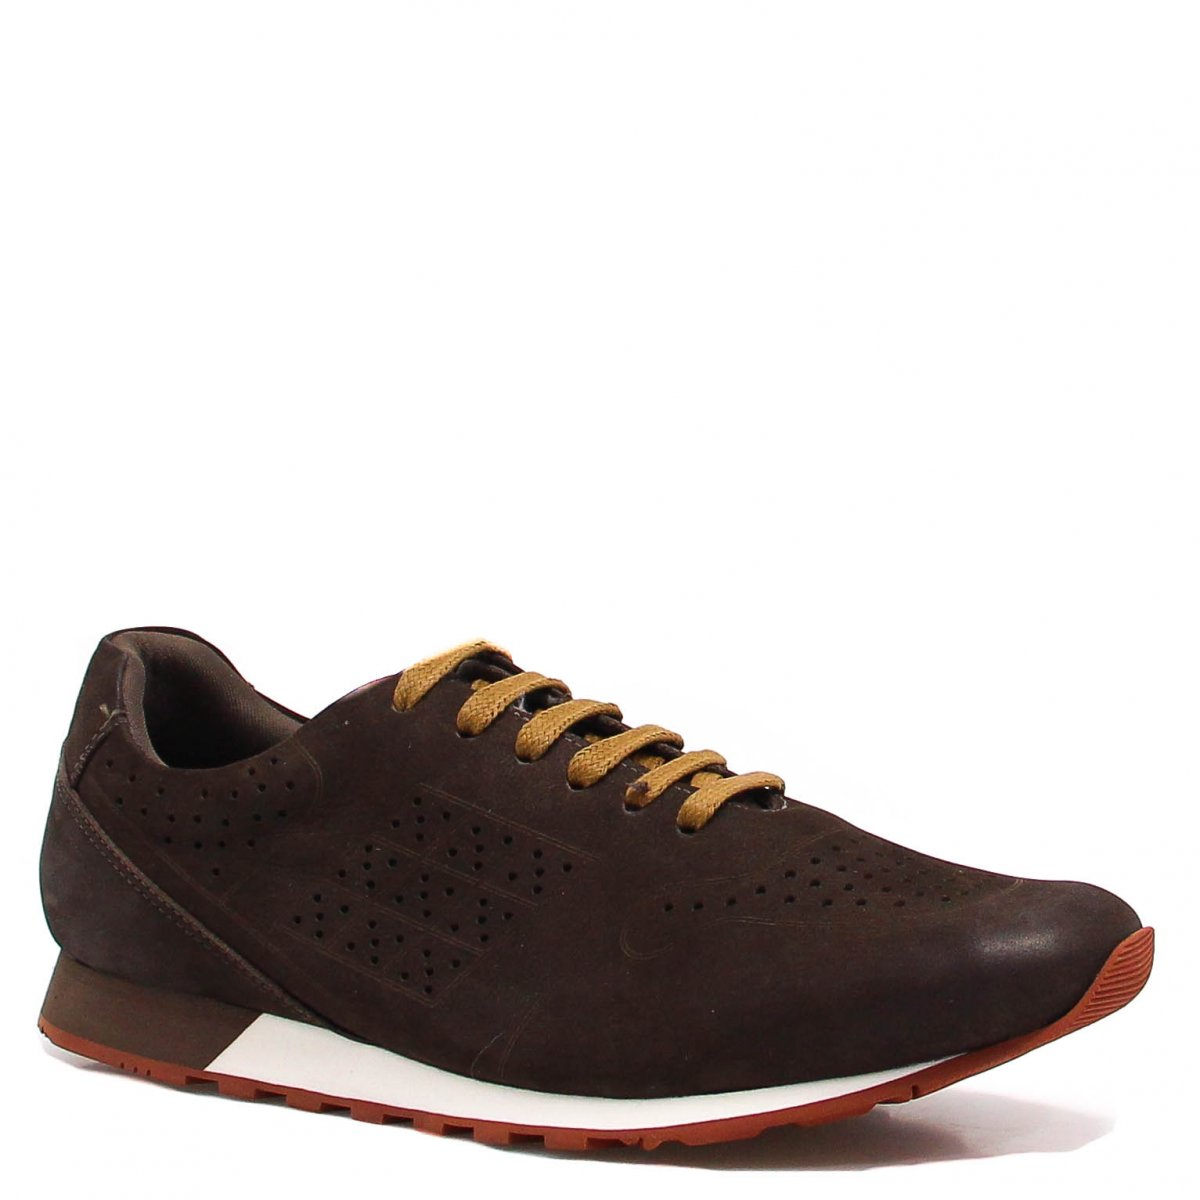 Sapatênis Zariff Shoes Casual Couro Marrom